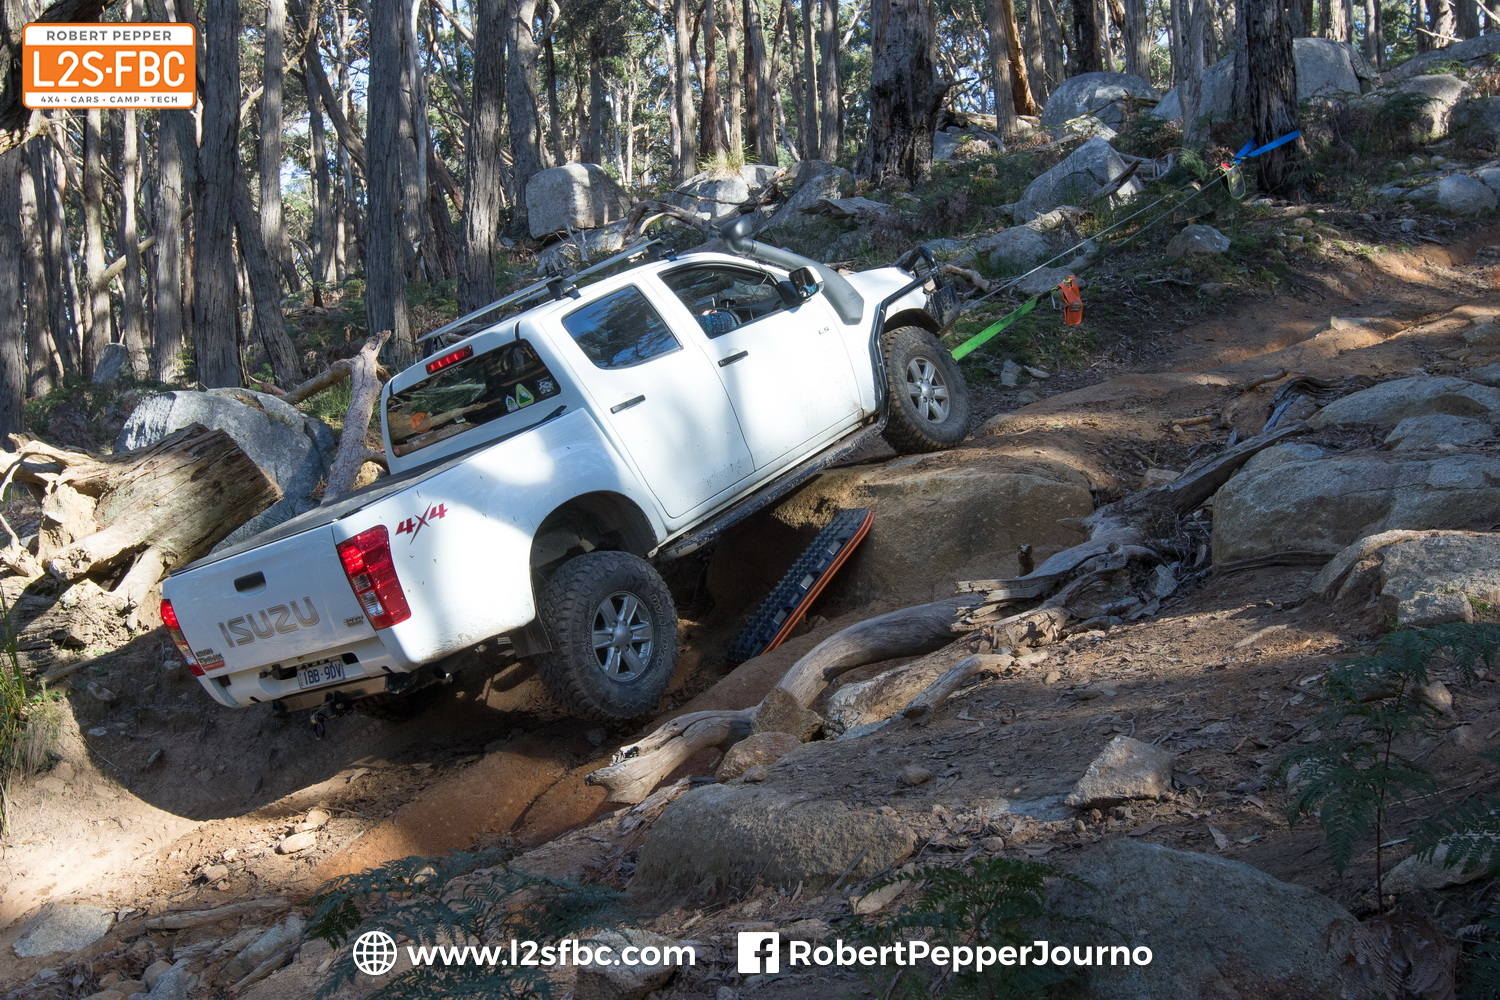 Let's start rating 4X4 recovery gear properly!